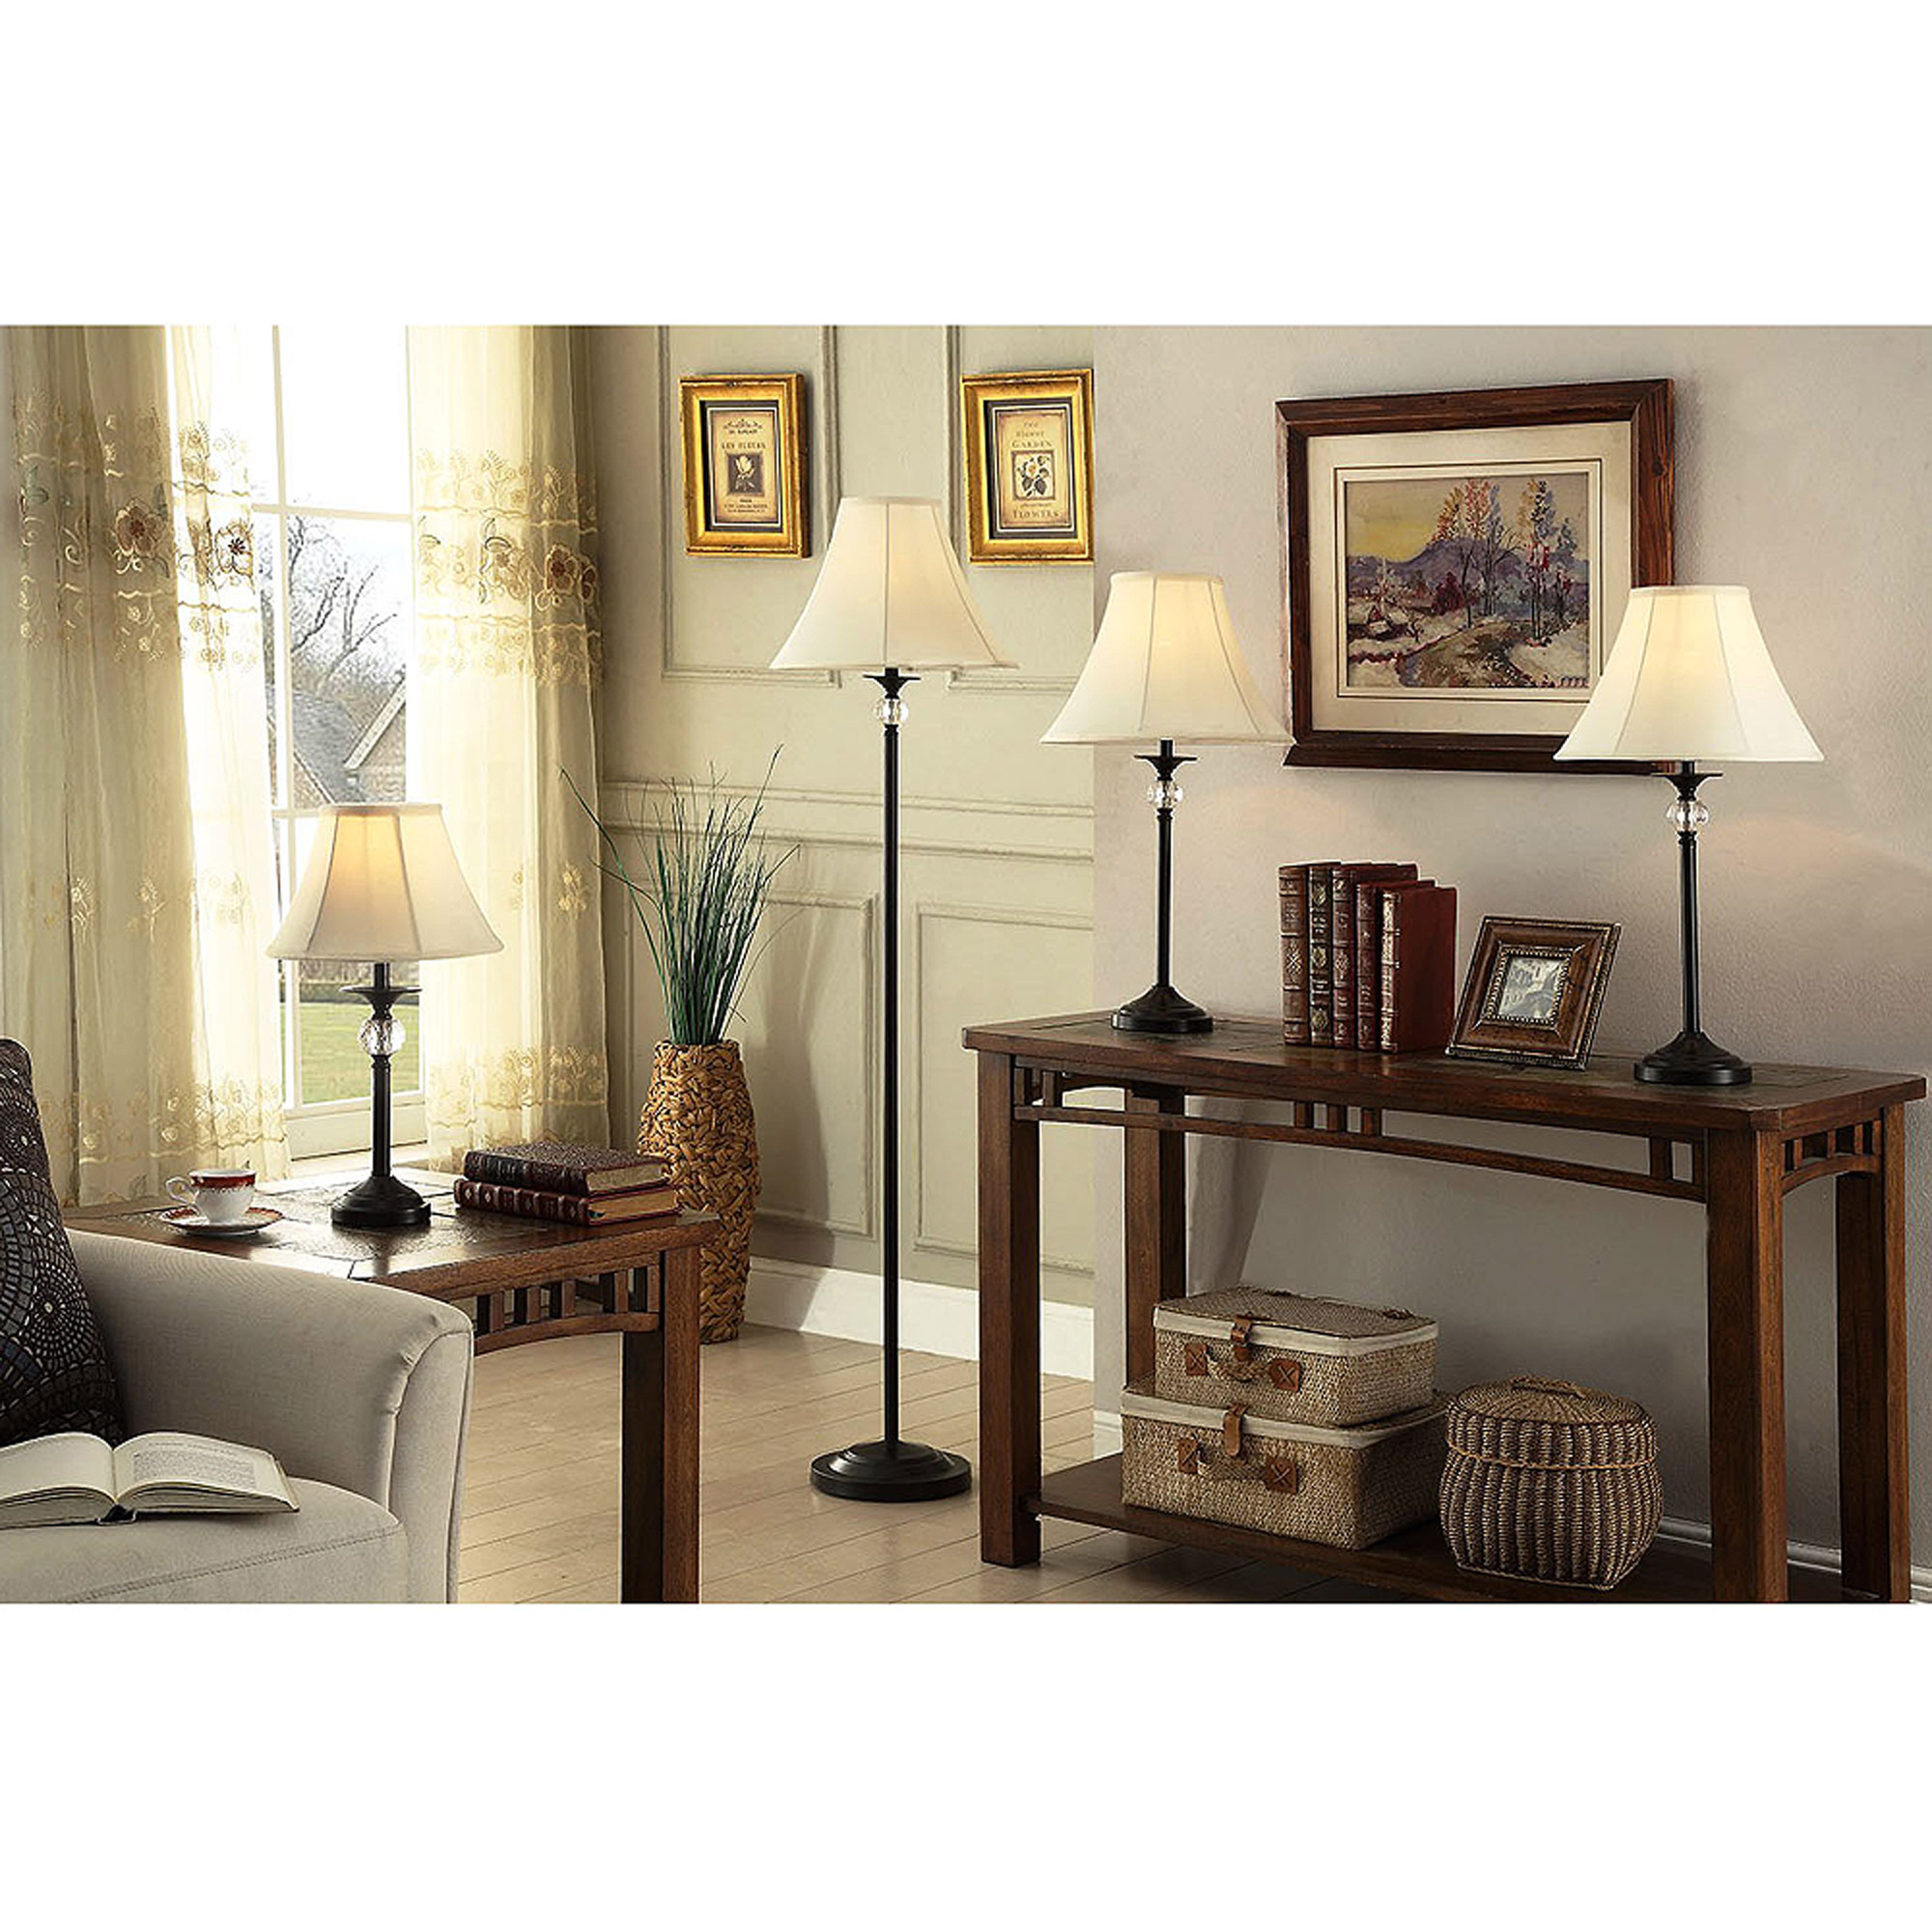 Better Homes and Gardens Lamps, Set of 4, Black